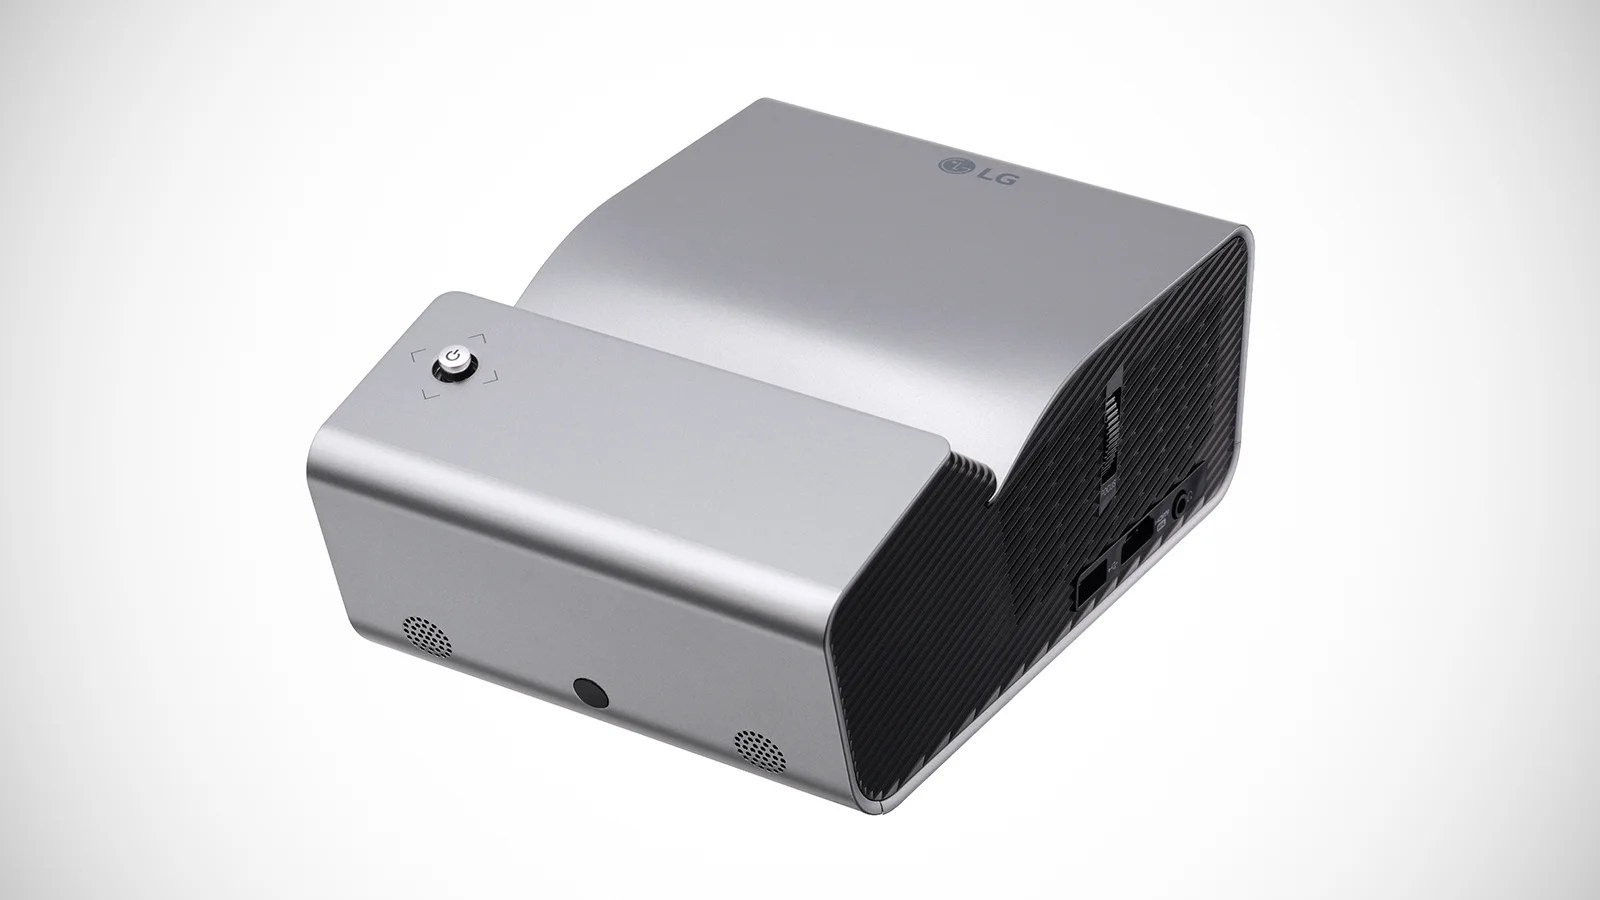 Samsung Beamer Lg Ph450ug Minibeam Projector Review Trusted Reviews